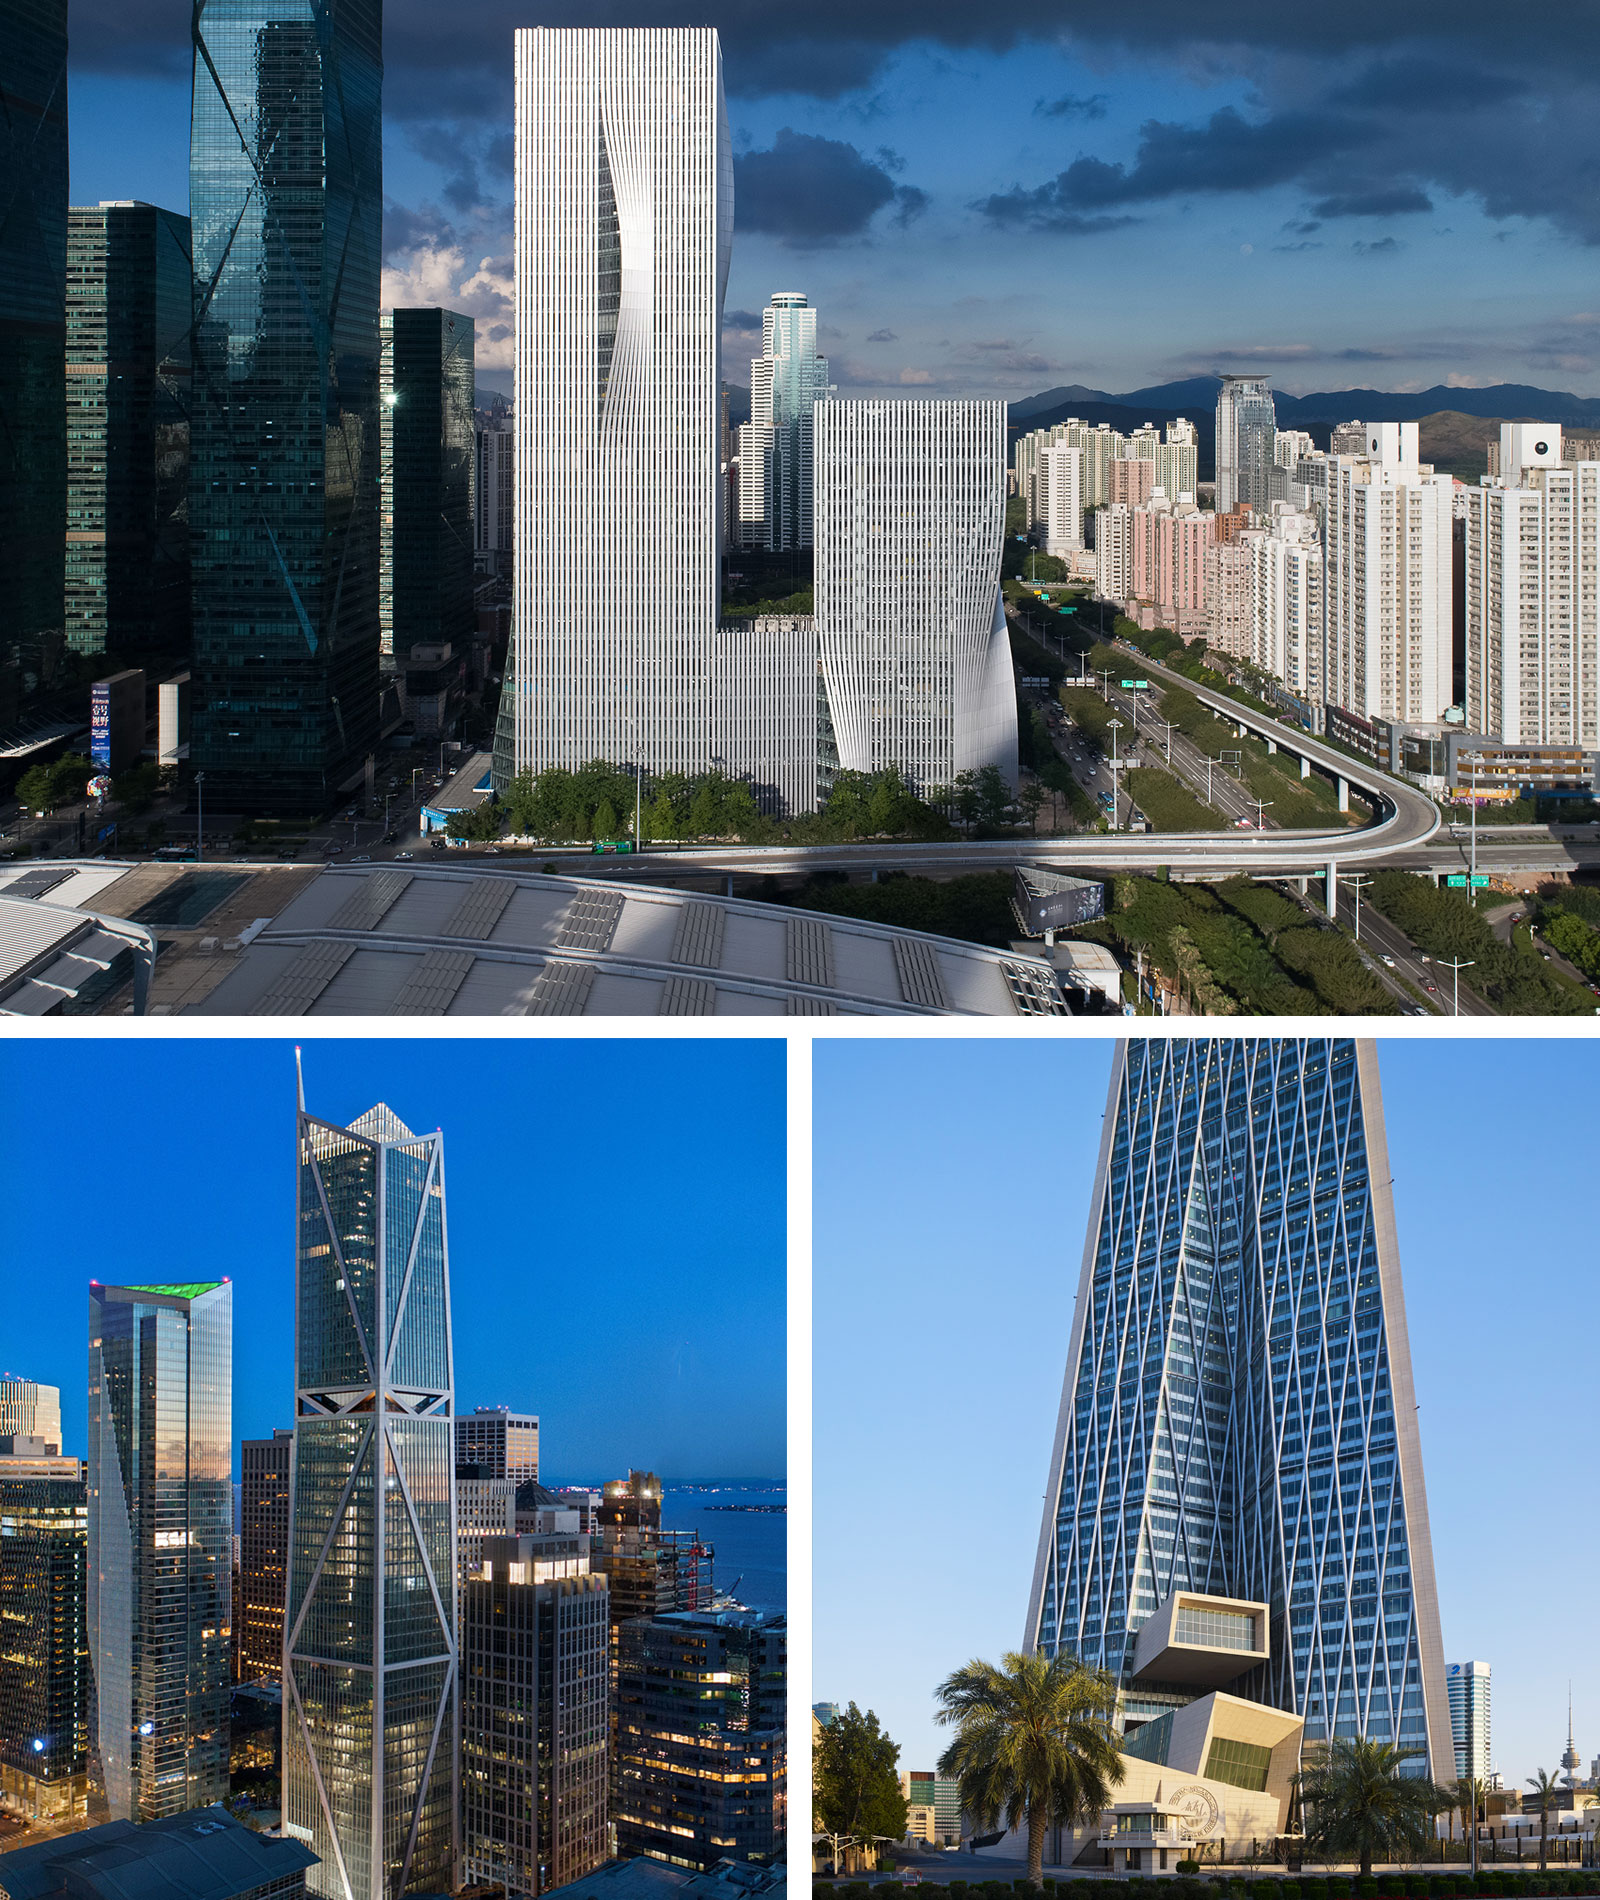 Shenzhen Energy Headquarter - Shenzhen (top middle), 181 Fremont Tower - San Francisco (bottom left), Bank of Kuwait New HQ - Kuwait City (bottom right).